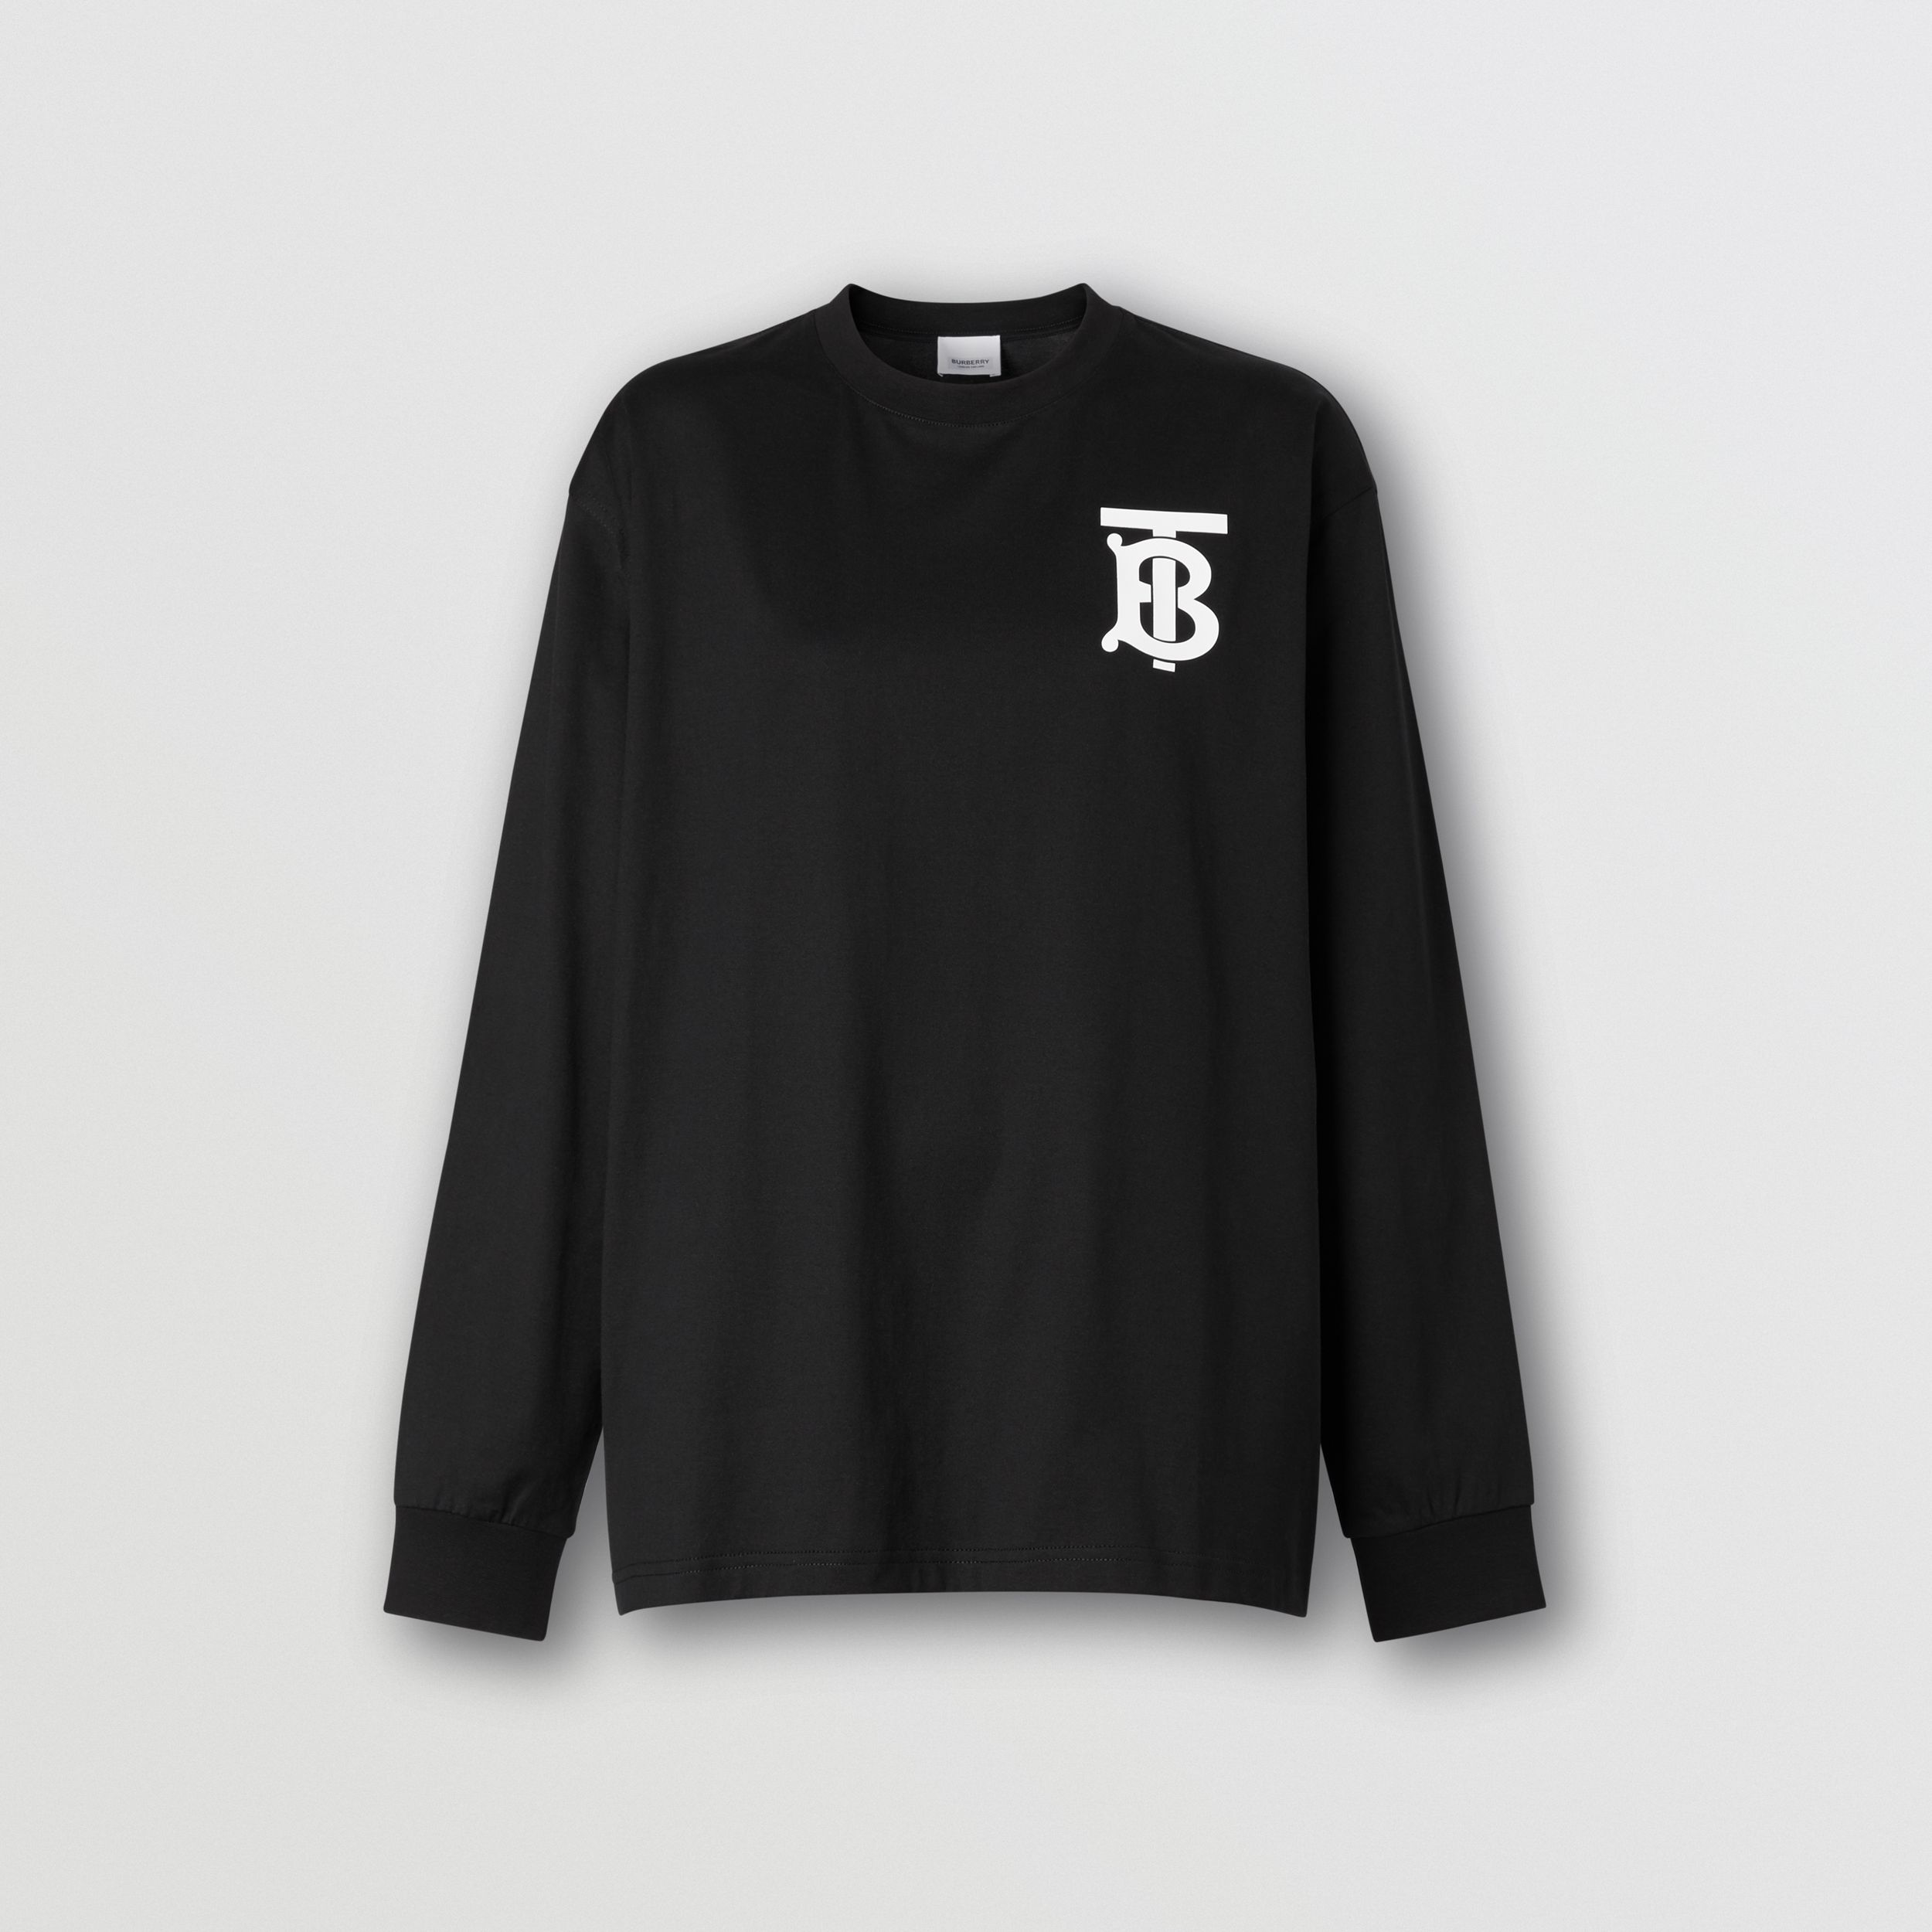 Long-sleeve Monogram Motif Cotton Top in Black - Women | Burberry Australia - 4